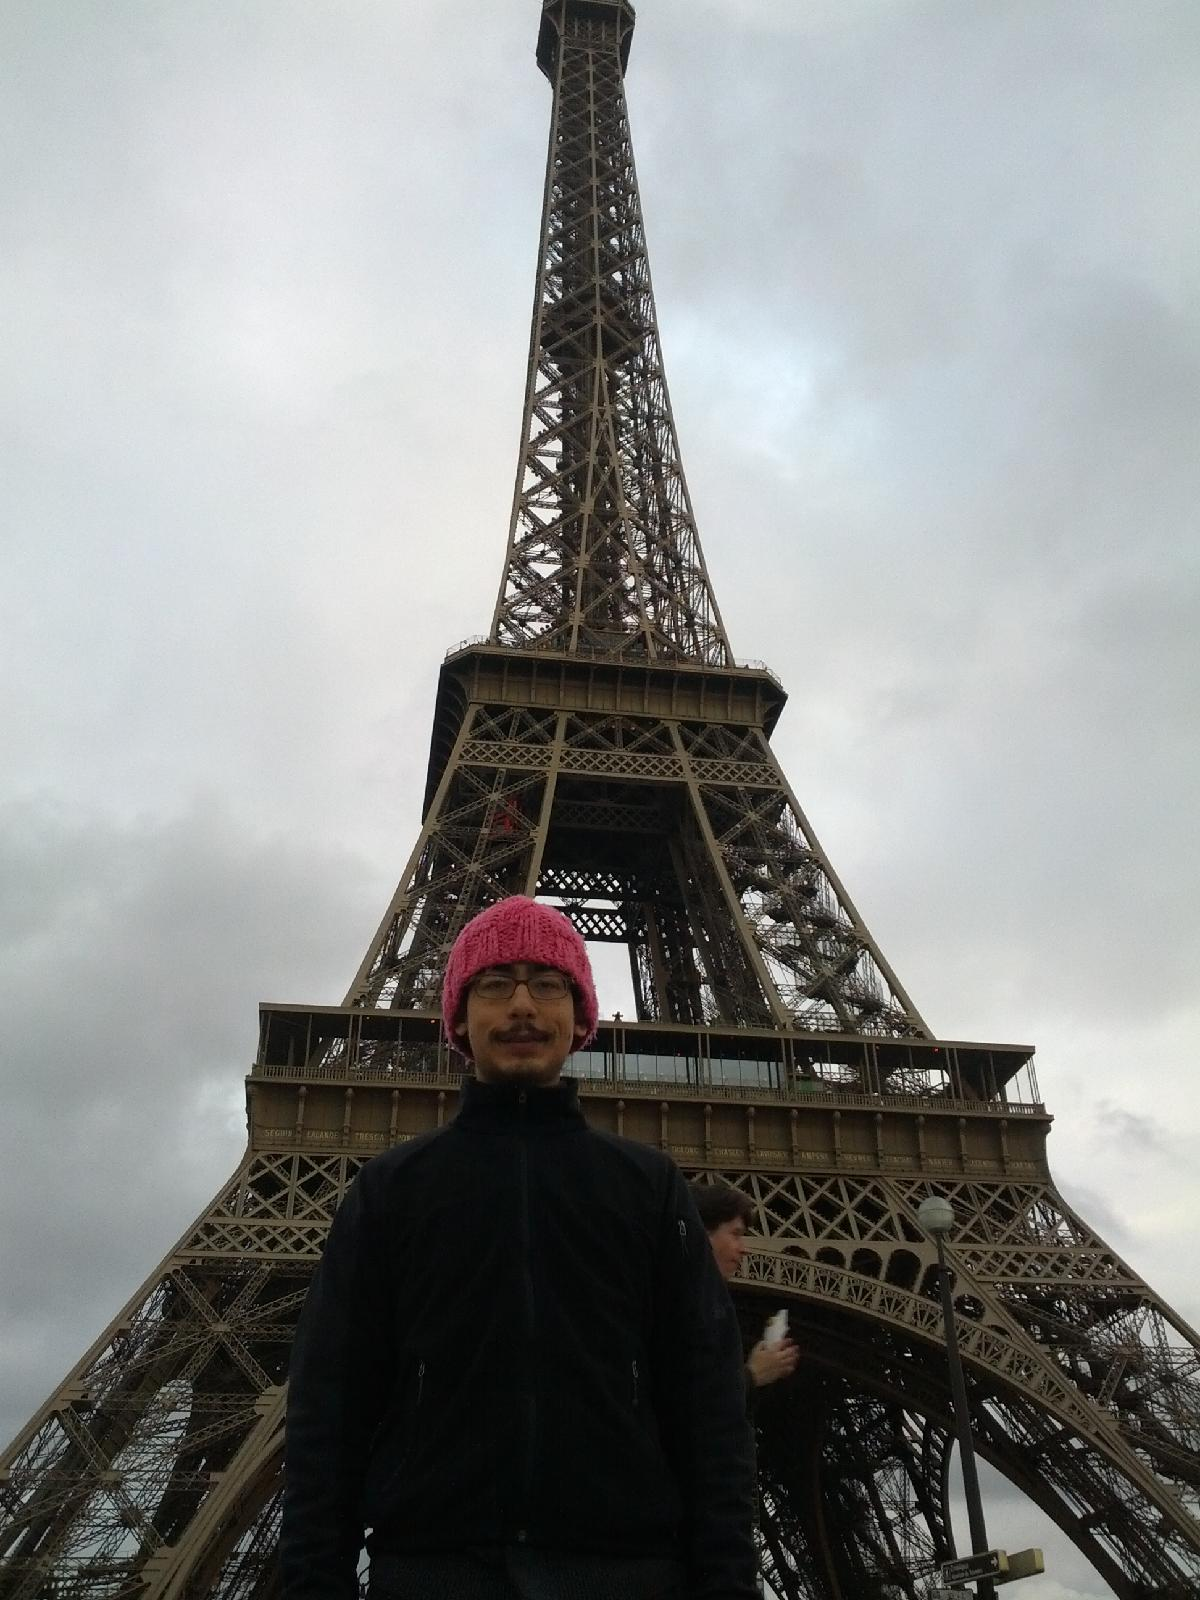 Tom in front of the Eiffel Tower